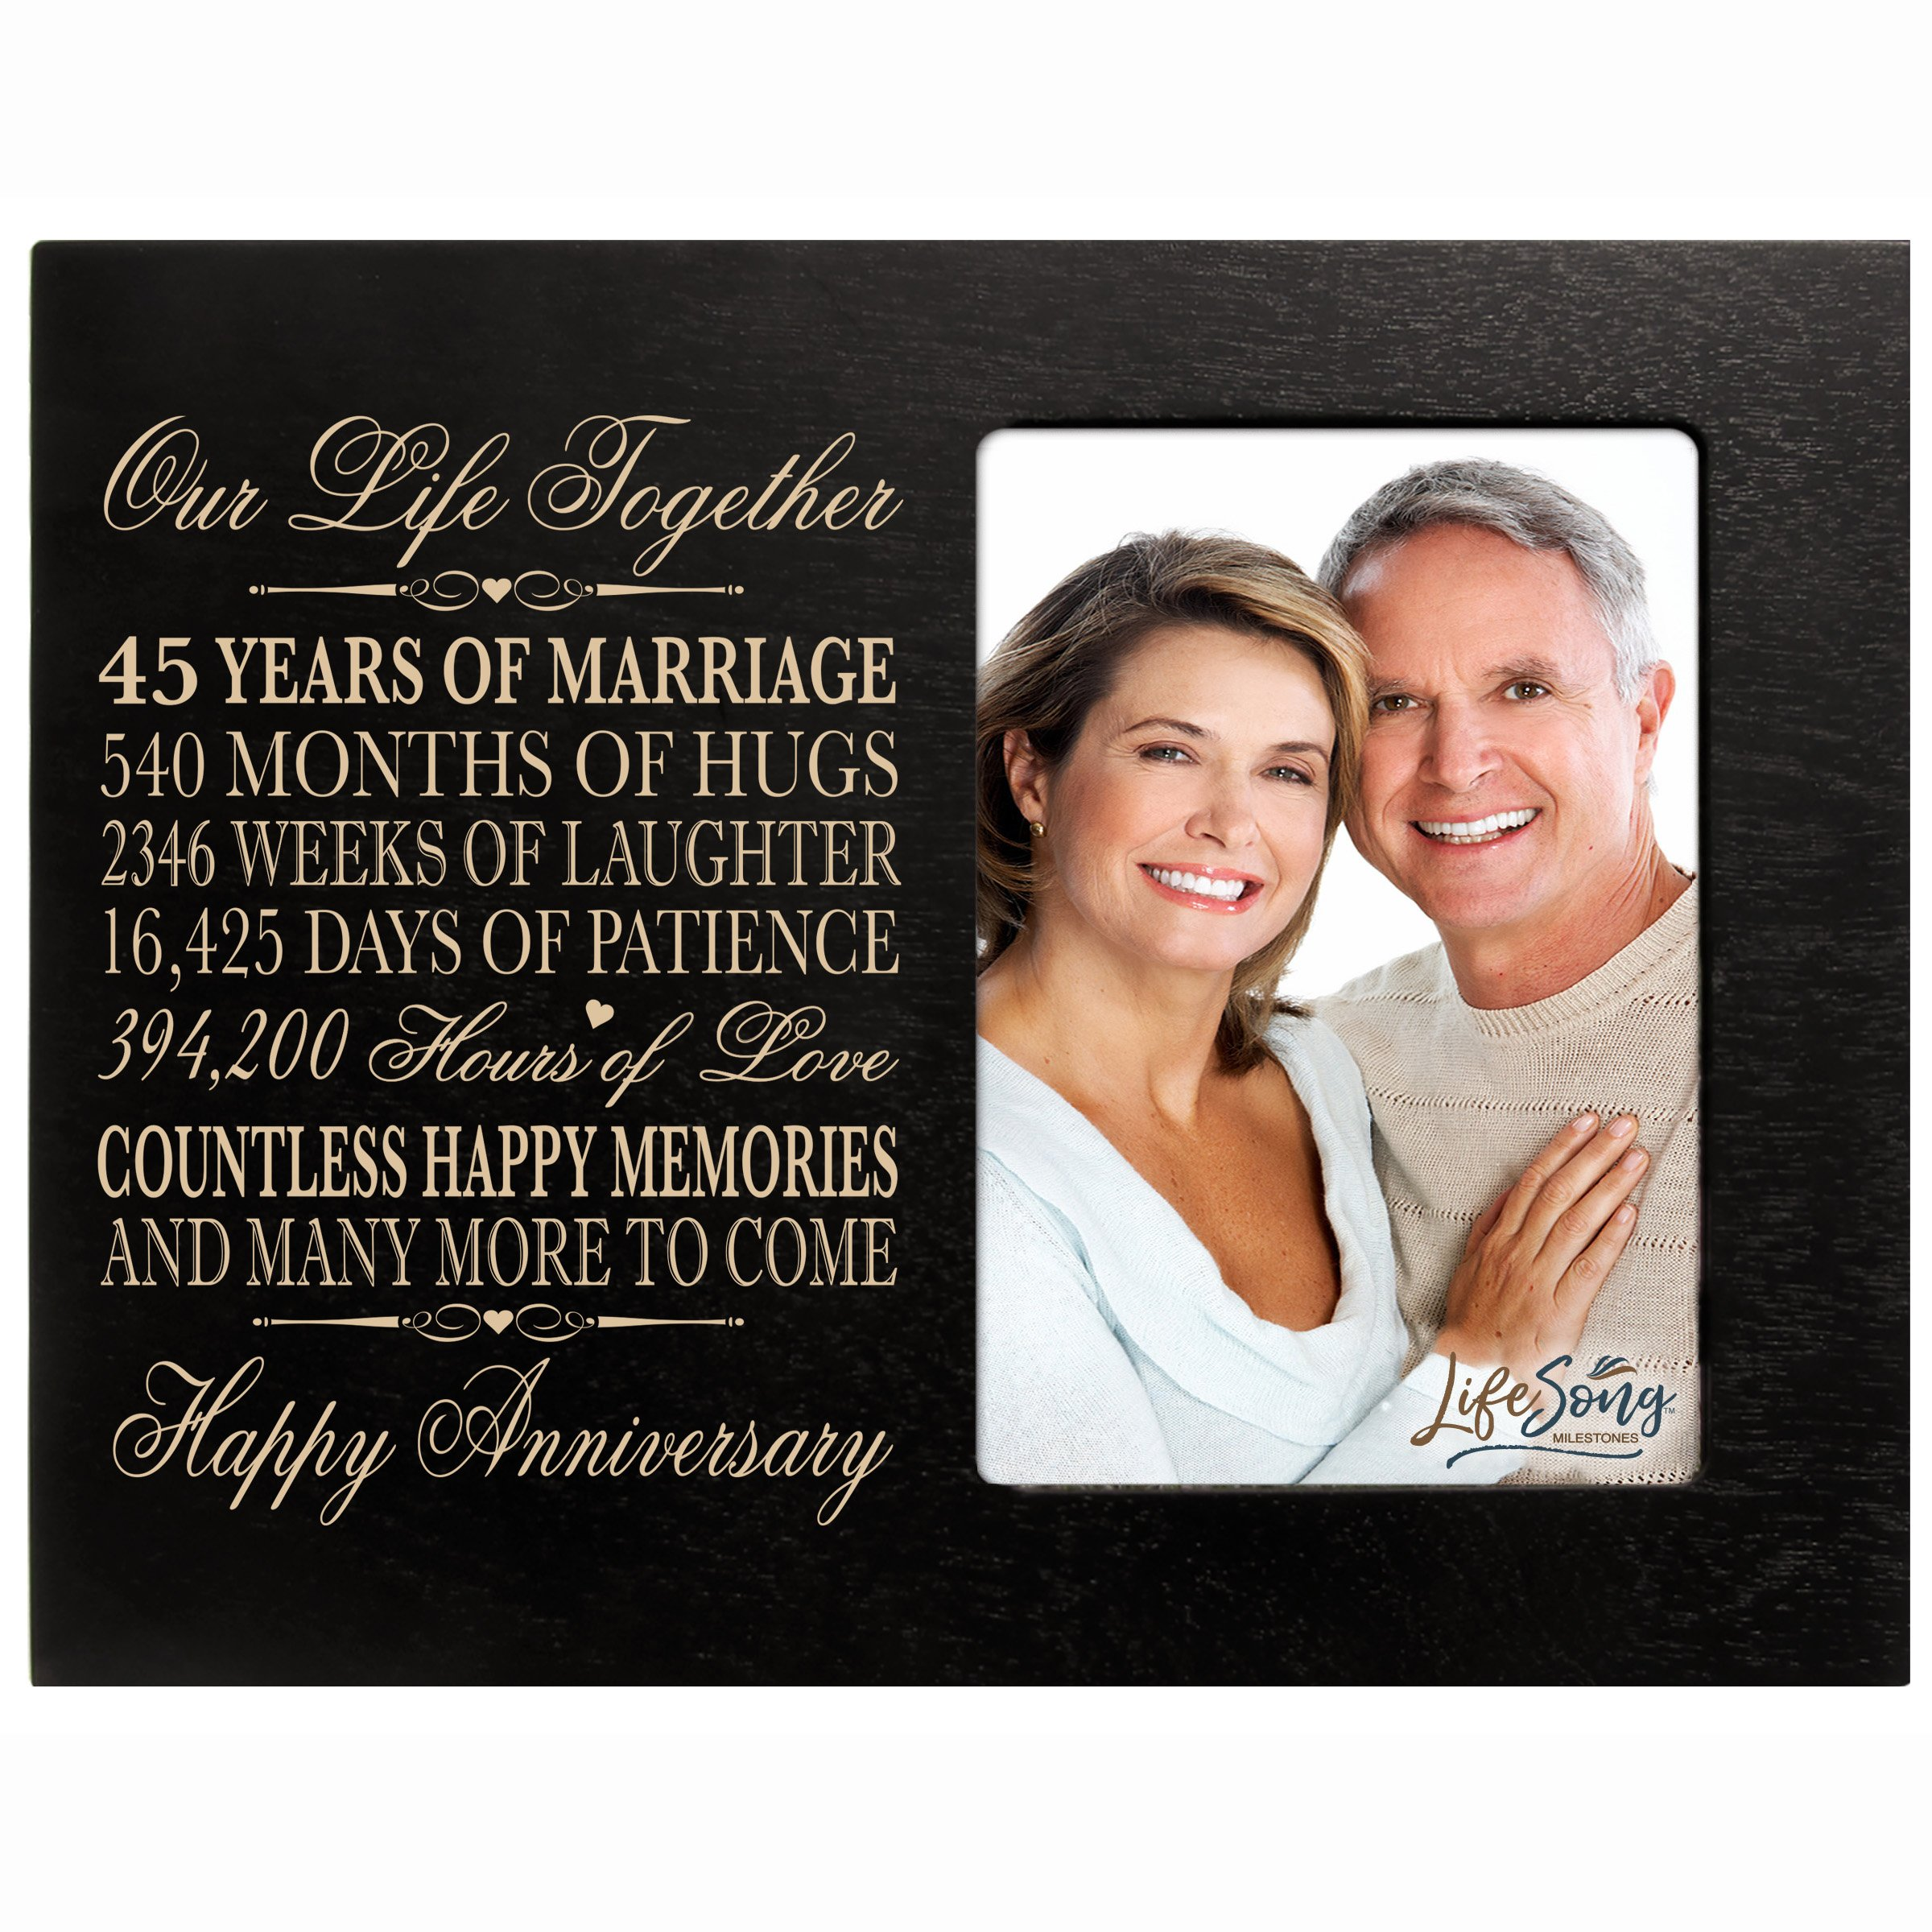 LifeSong Milestones 45 Year Wedding Anniversary Frame Gift for him her Couple Custom Engraved 45th Year Wedding Celebration for Husband or Wife Photo Frame Holds 1 4x6 Photo 8'' H X 10'' W (Black)